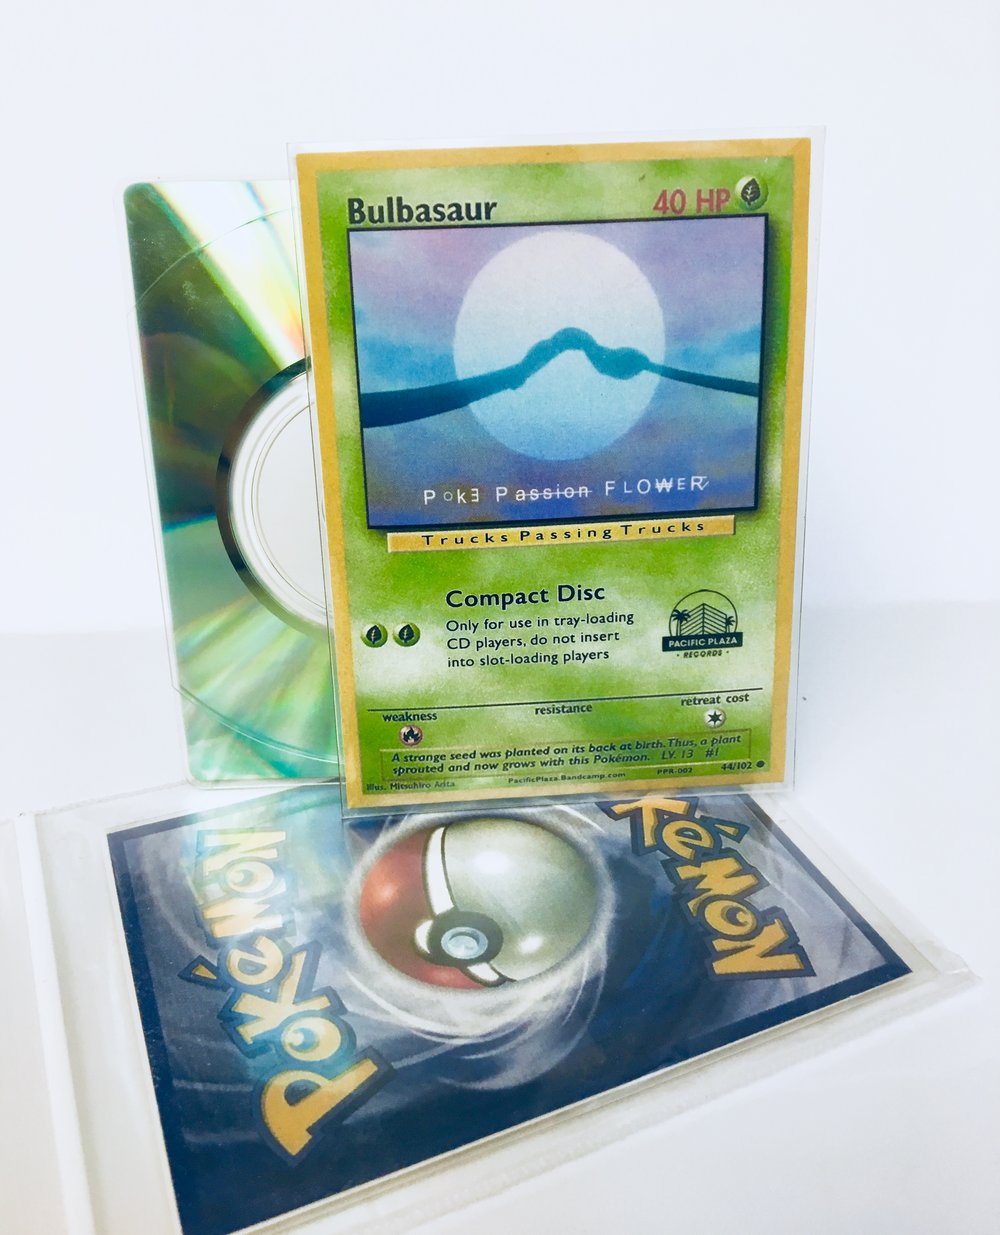 The creative packaging of Poke Passion Flower is a card shaped sleeve that houses a rectangular disc. When assembled, the release looks like a Pokemon card in a trading card sleeve.